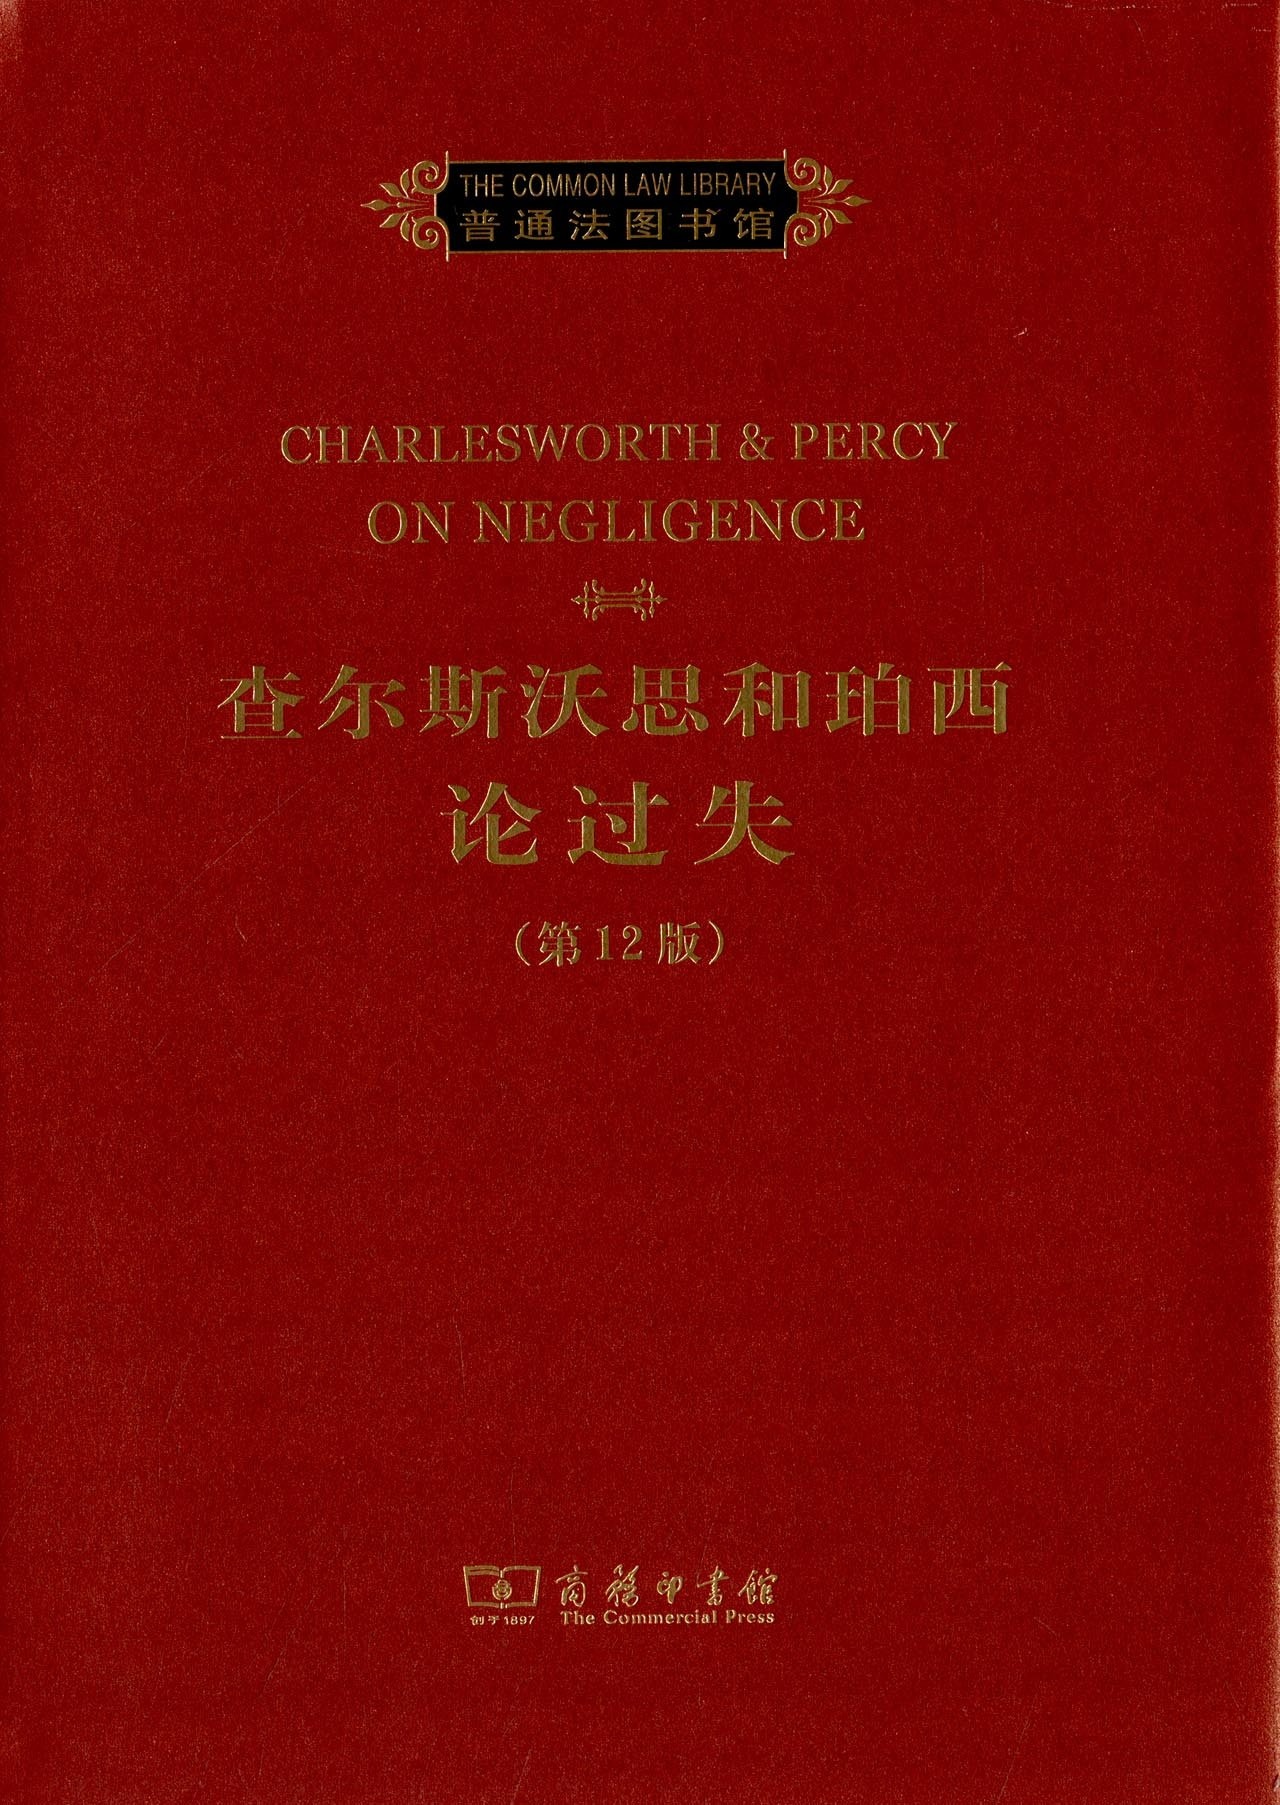 Download Charlesworth & Percy on Negligence(Chinese Edition) PDF